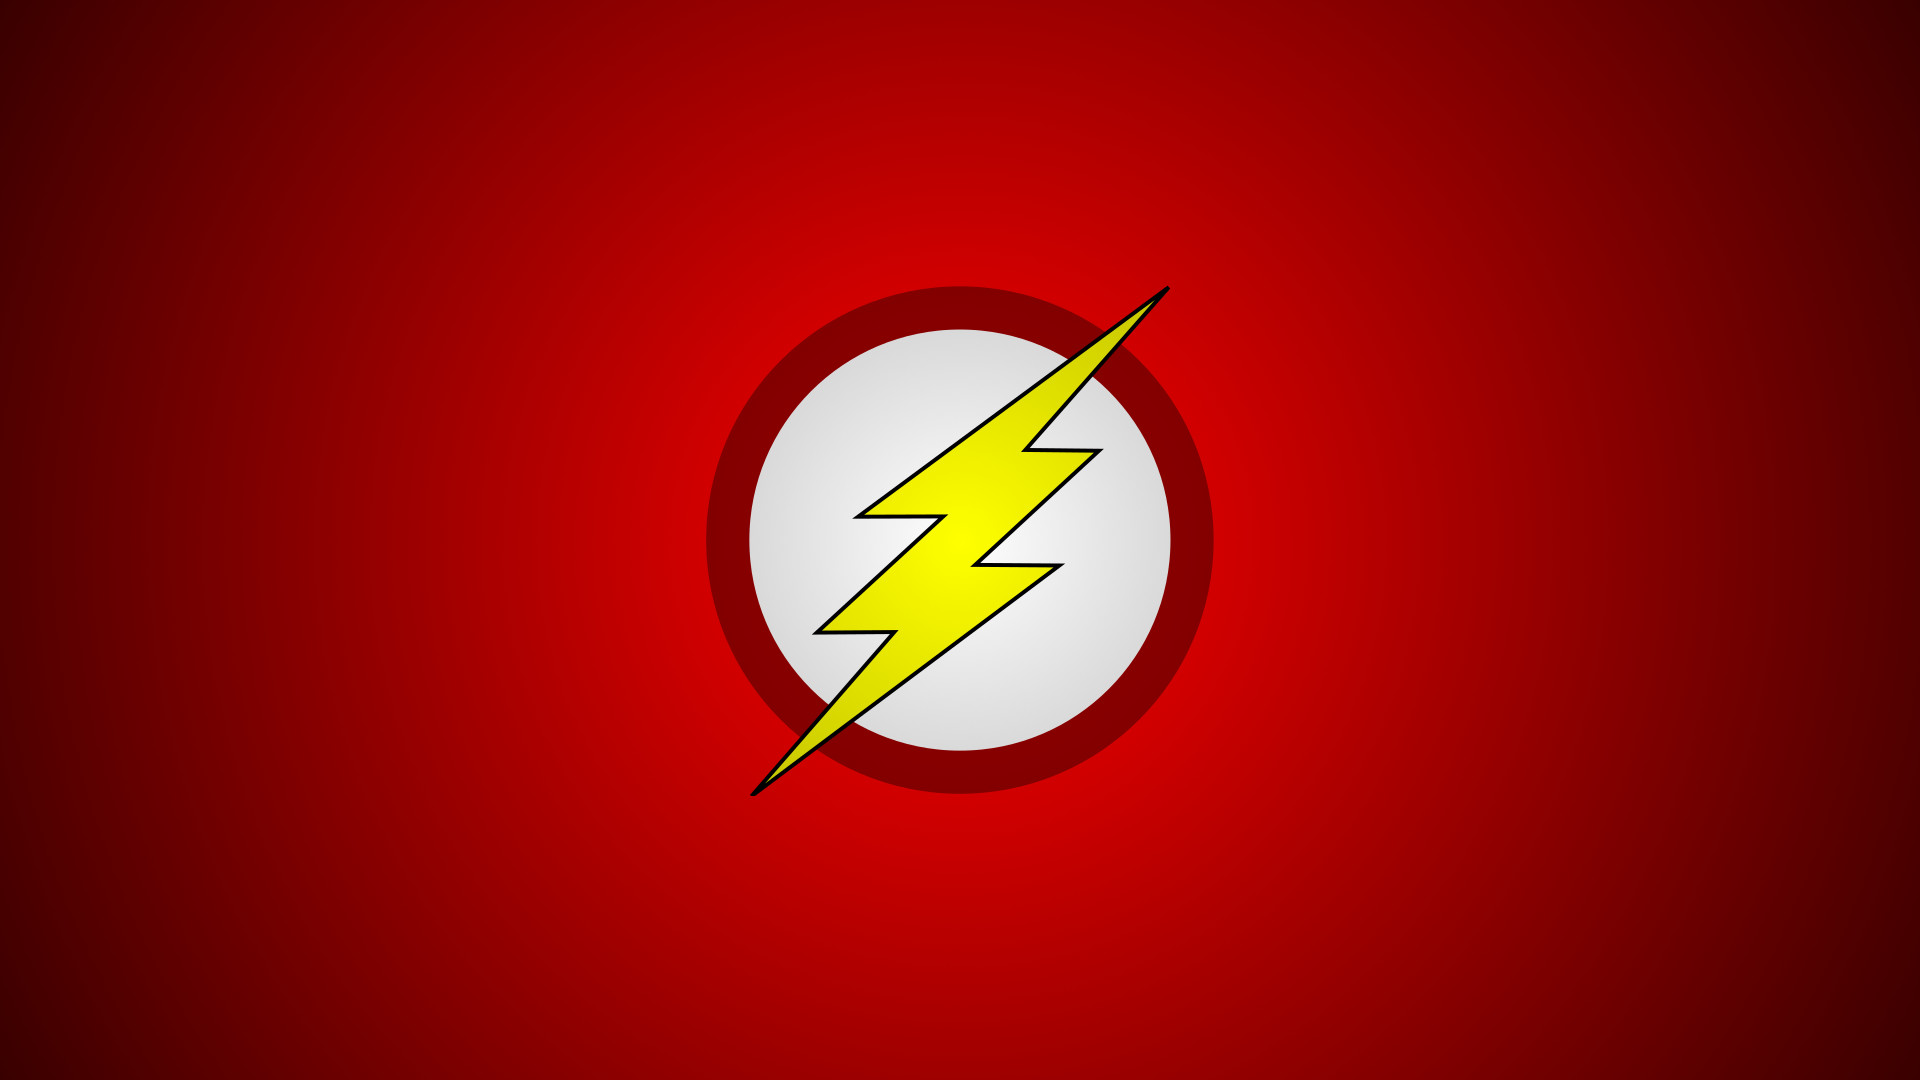 Cw Flash iPhone Wallpaper (79+ images)